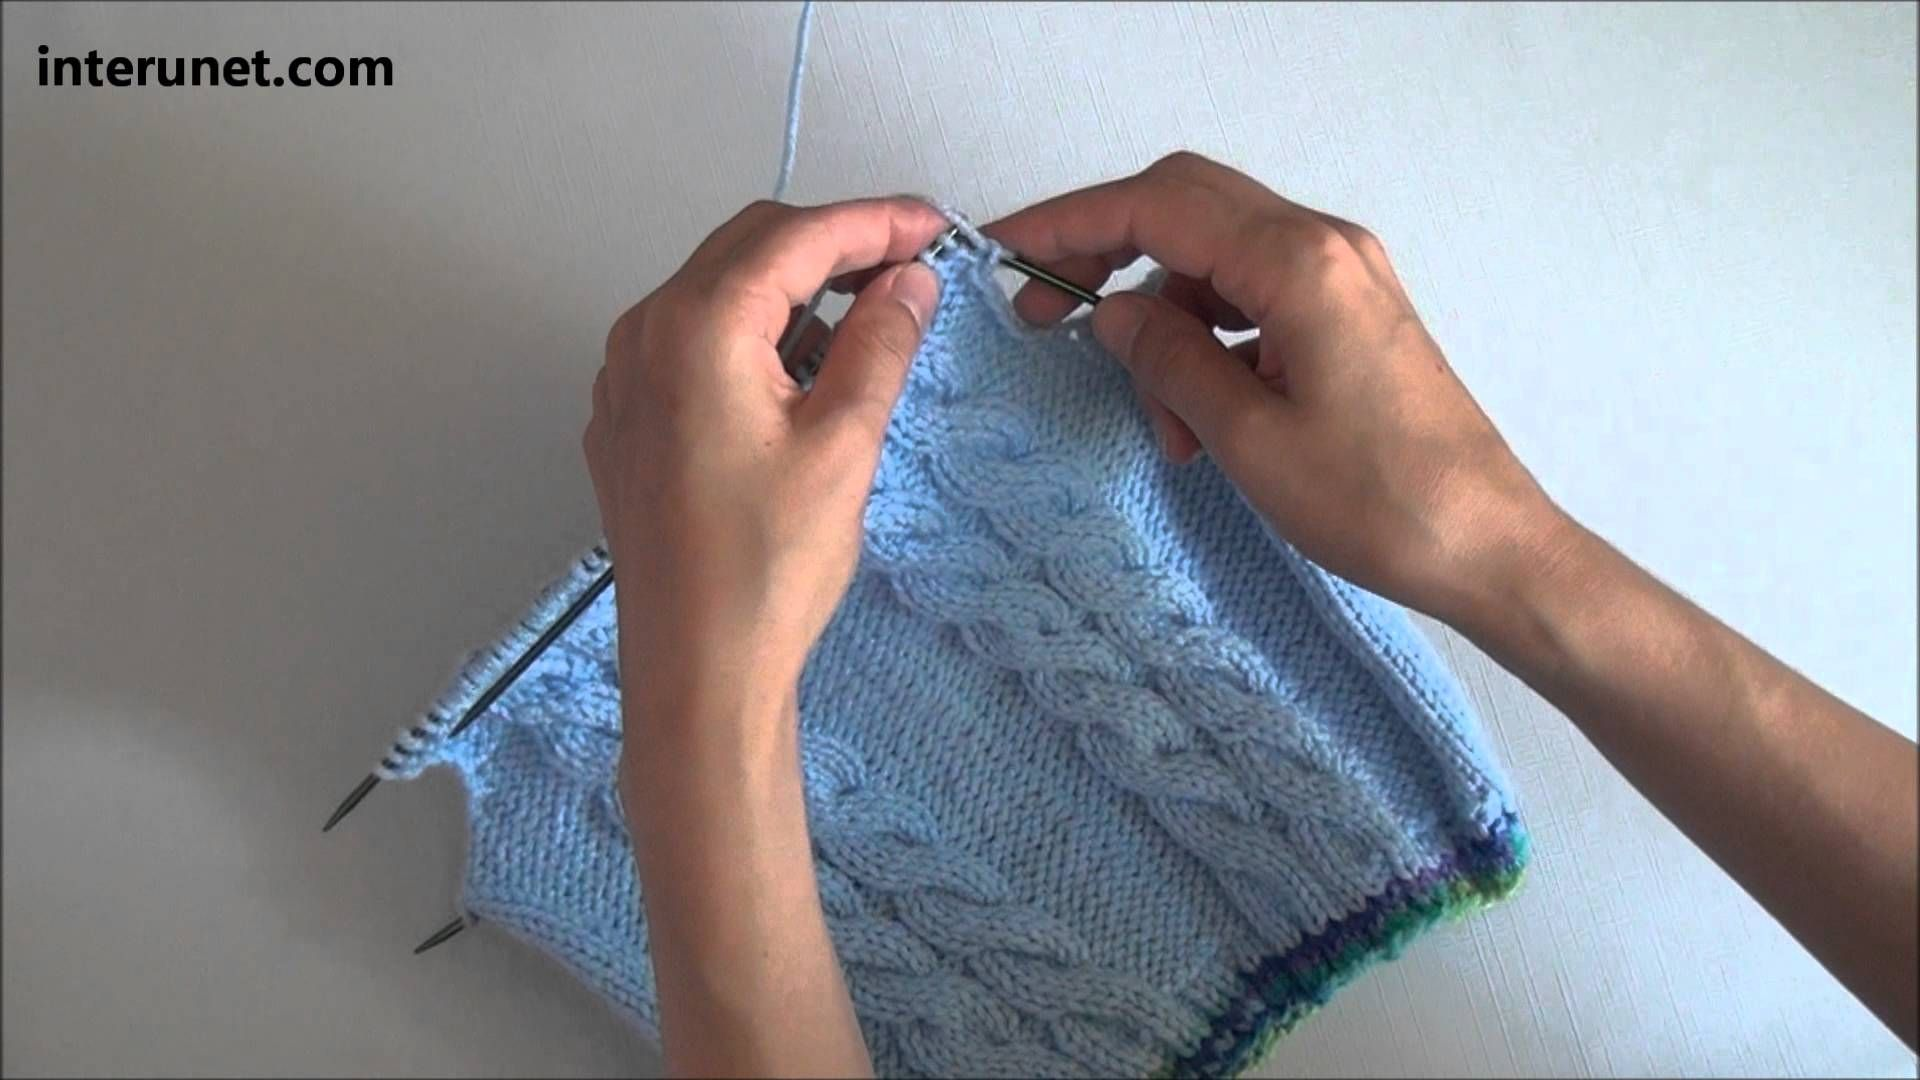 960ccd4021e4 How to knit a sweater for baby or toddler - video tutorial with ...